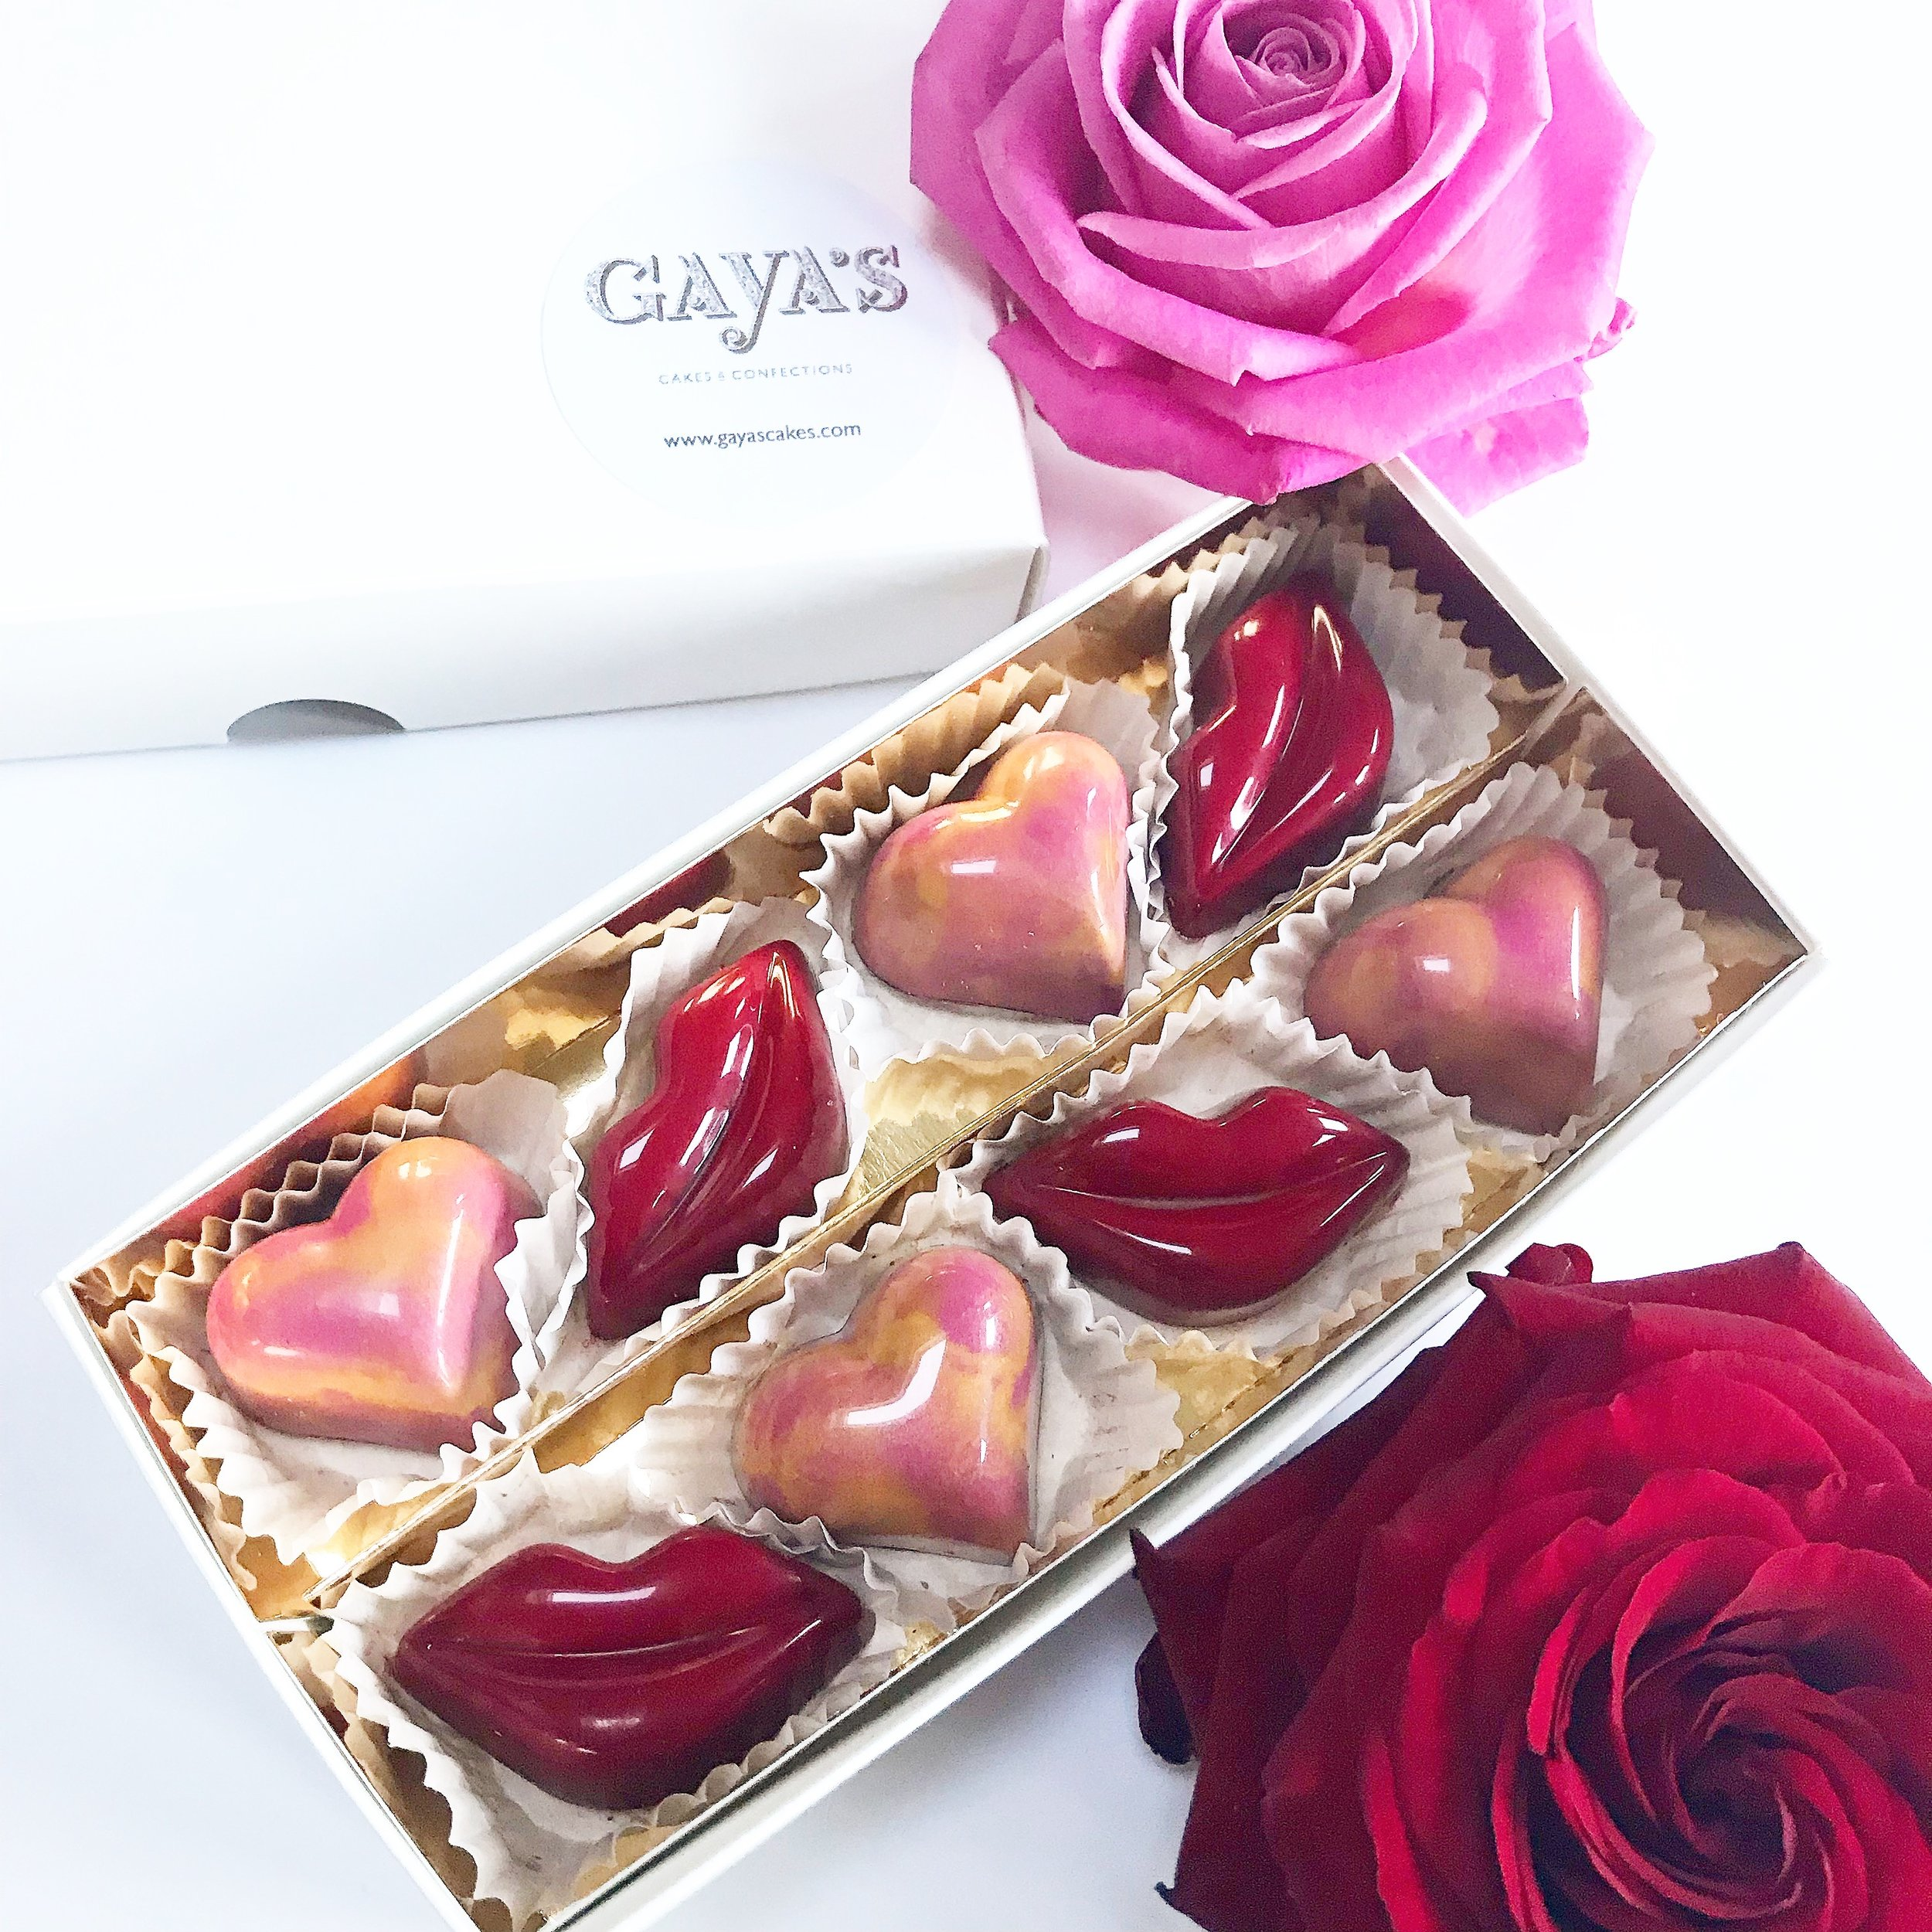 Alcohol free Valentine's Chocolate Bonbons -